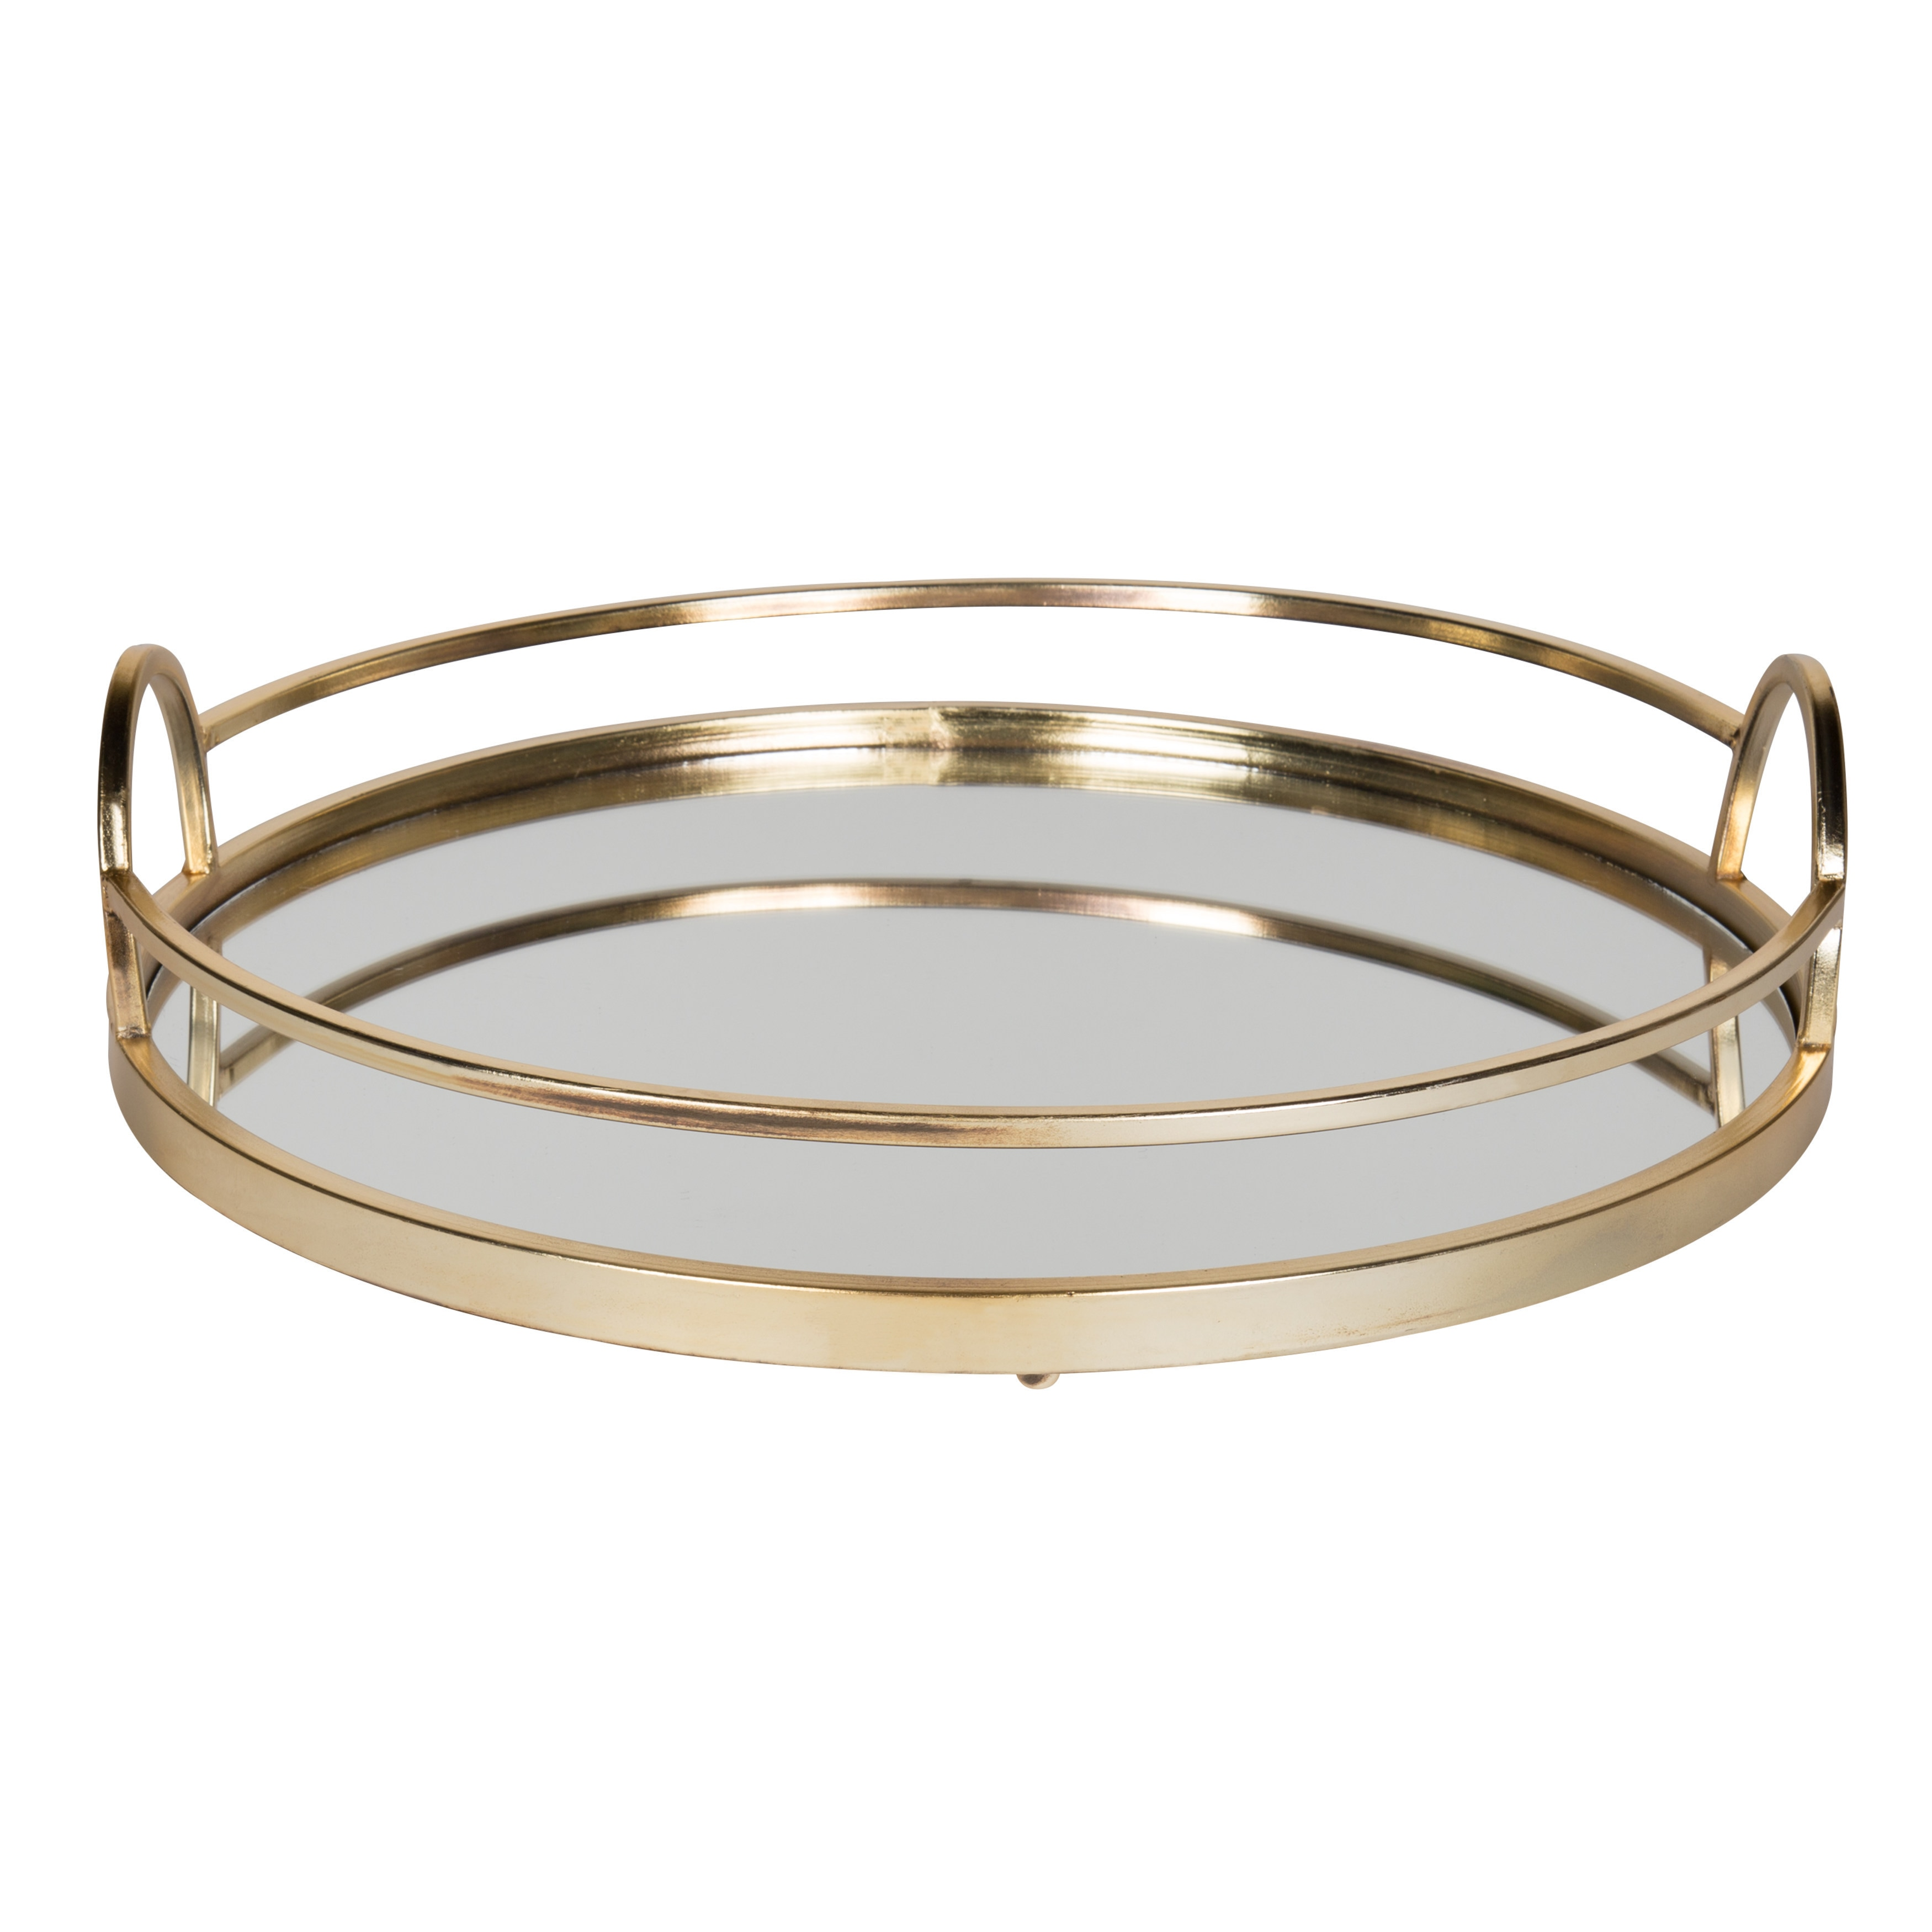 Shop Kate And Laurel Naples Gold Metal Mirrored Round Decorative Tray Overstock 15439075